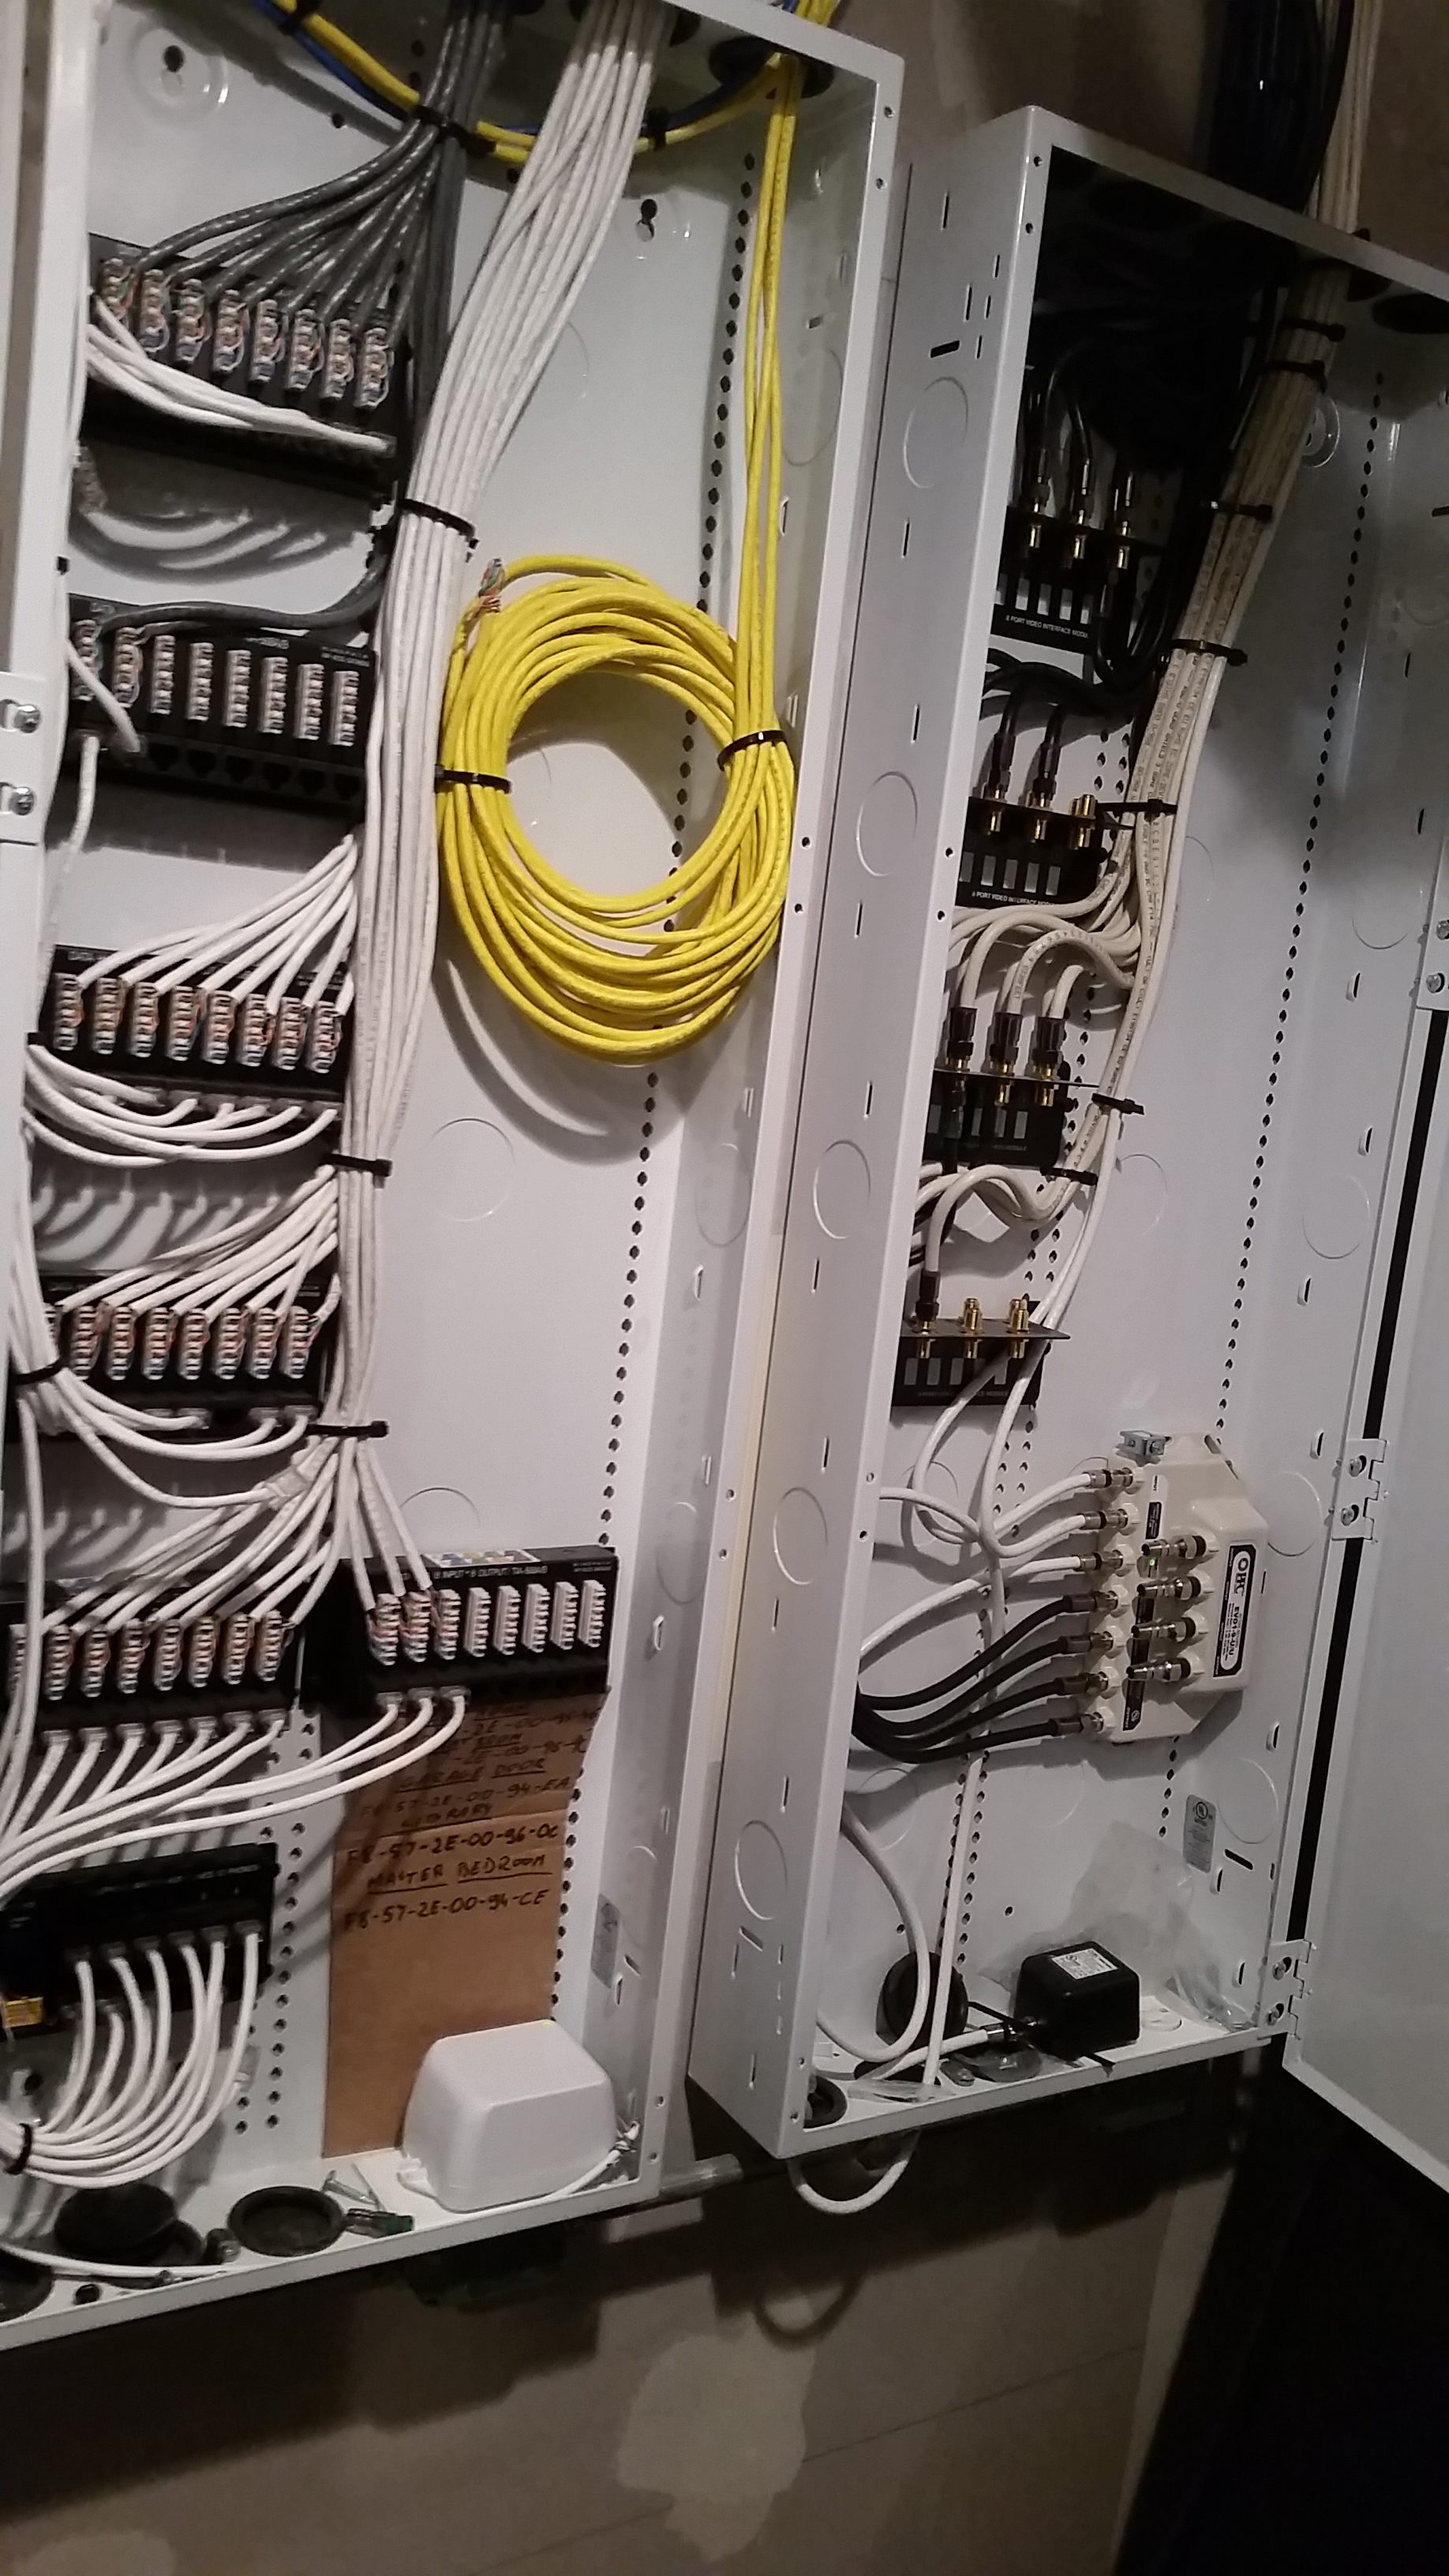 hight resolution of this is the fourth post in a series on how to prewire low voltage wiring and structured cabling in your home we ll be focusing on how to install a